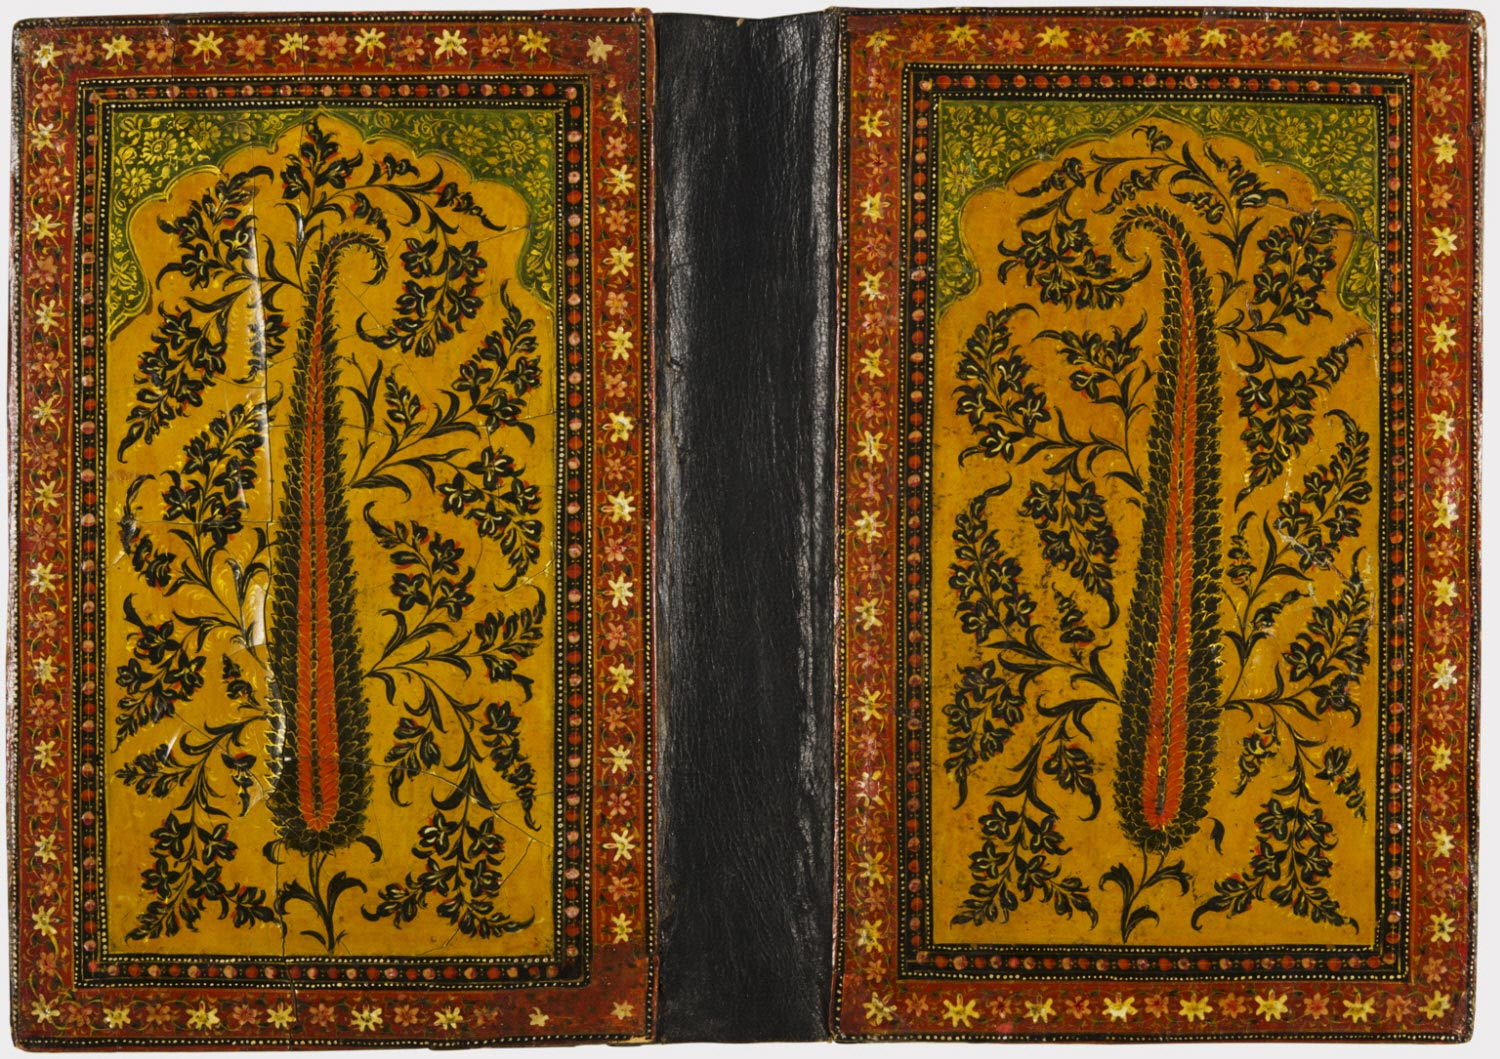 Codex Book Cover With Boteh Motif